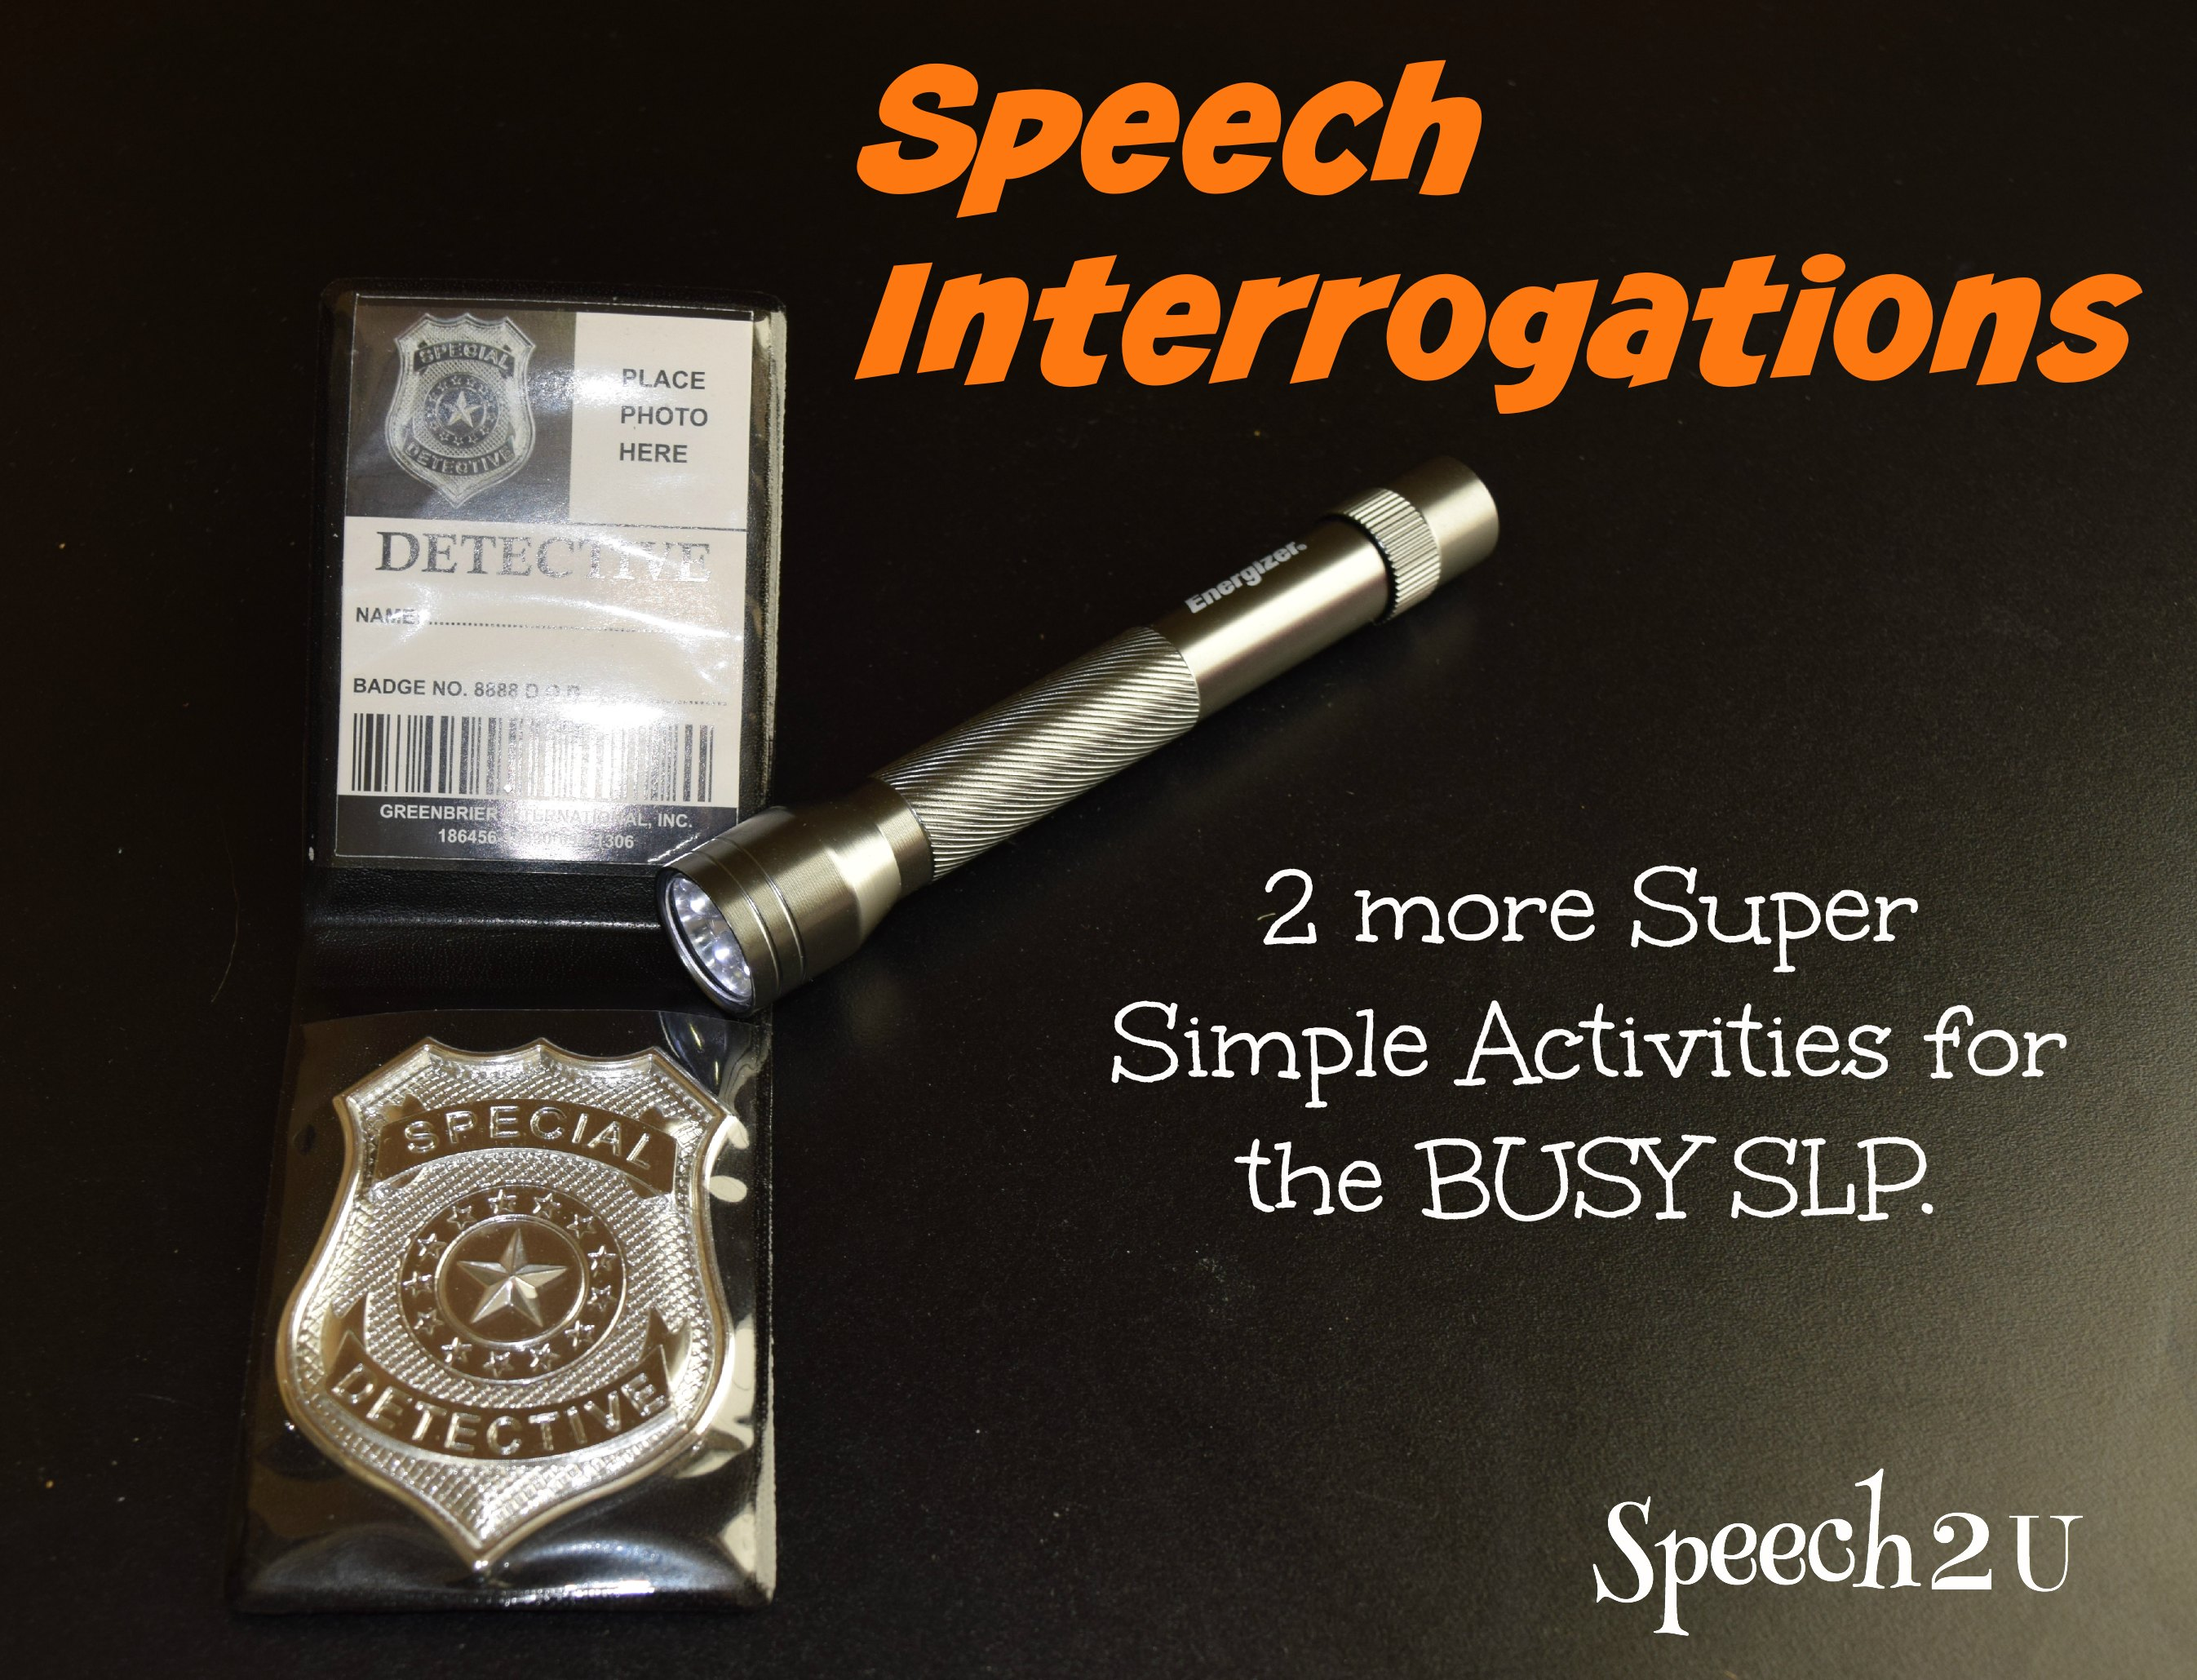 Speech Interrogations 2 More Super Simple Activities For The Busy Slp